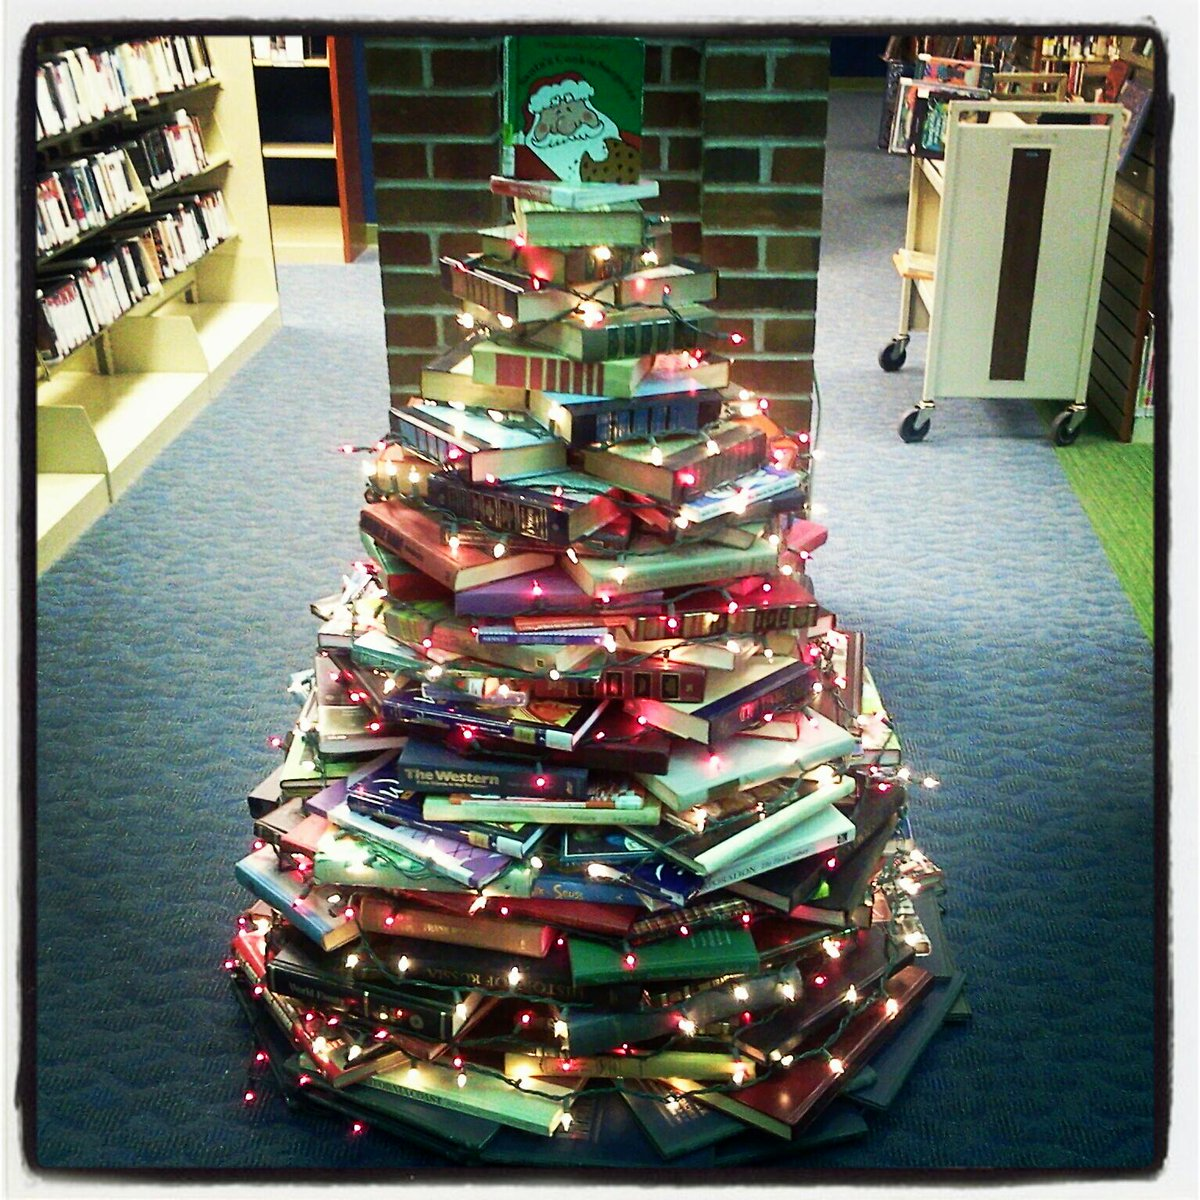 Use Books to Build a #Christmas Tree: http://t.co/TVd99roHj7 http://t.co/ybxsAX1Tc9